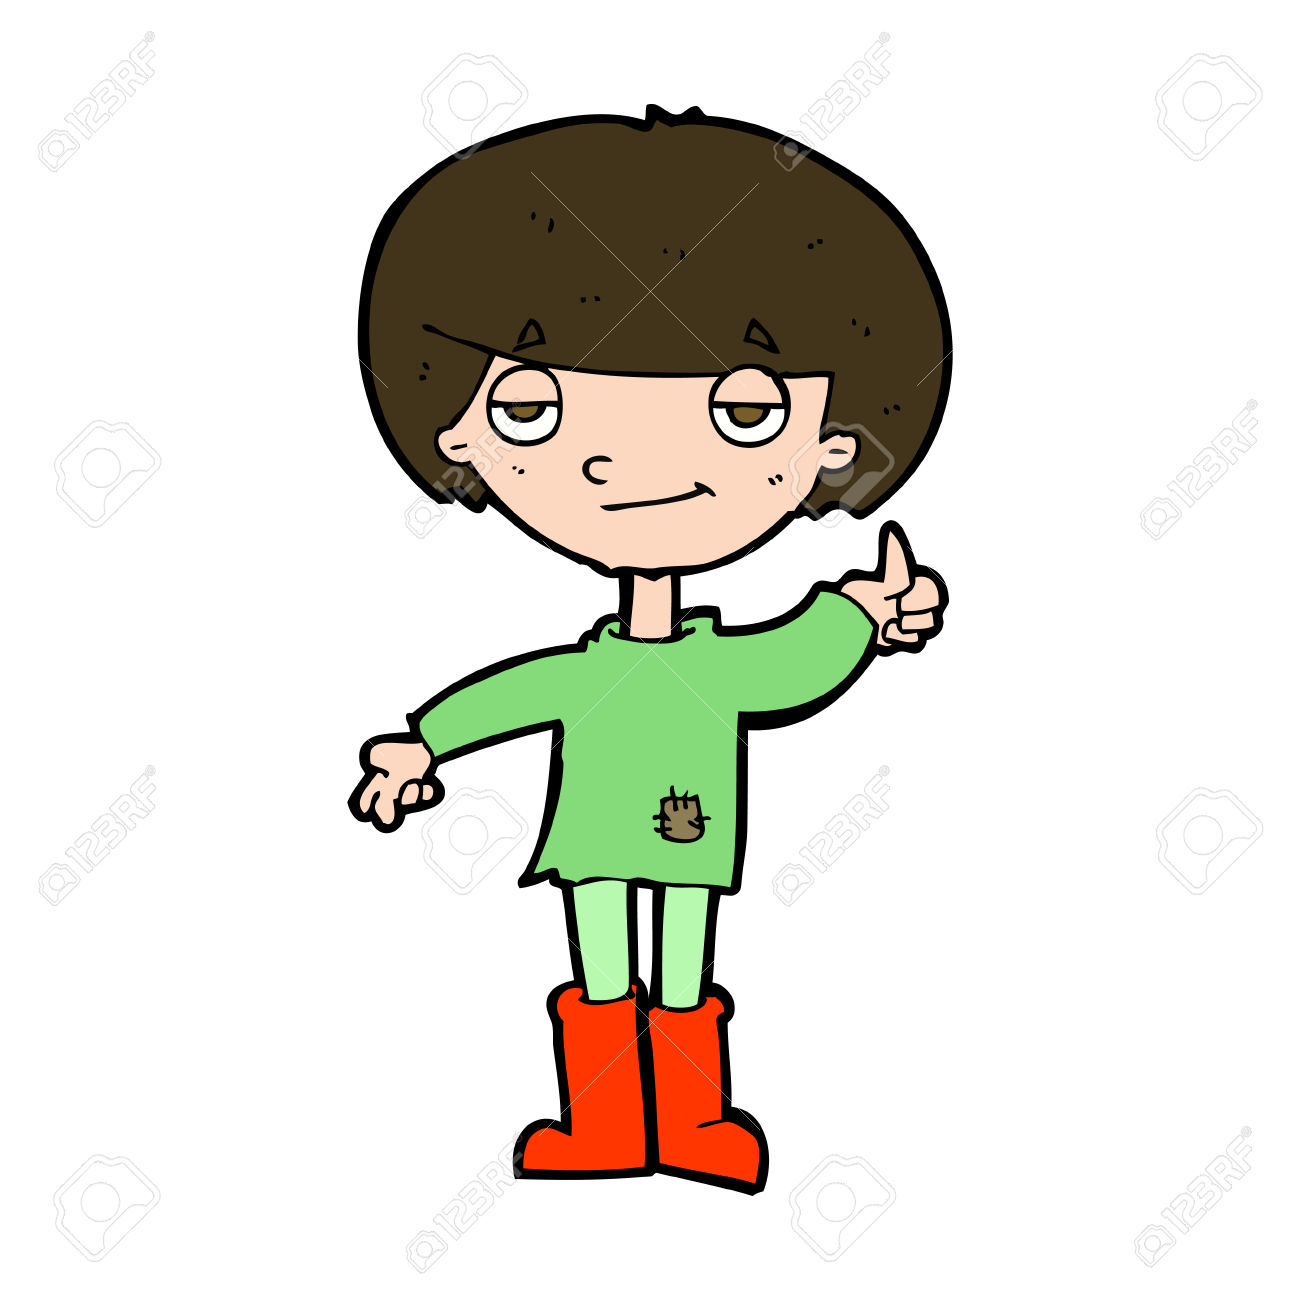 Thumbs up boy clipart clip freeuse download Cartoon Boy In Poor Clothing Giving Thumbs Up Symbol Royalty Free ... clip freeuse download